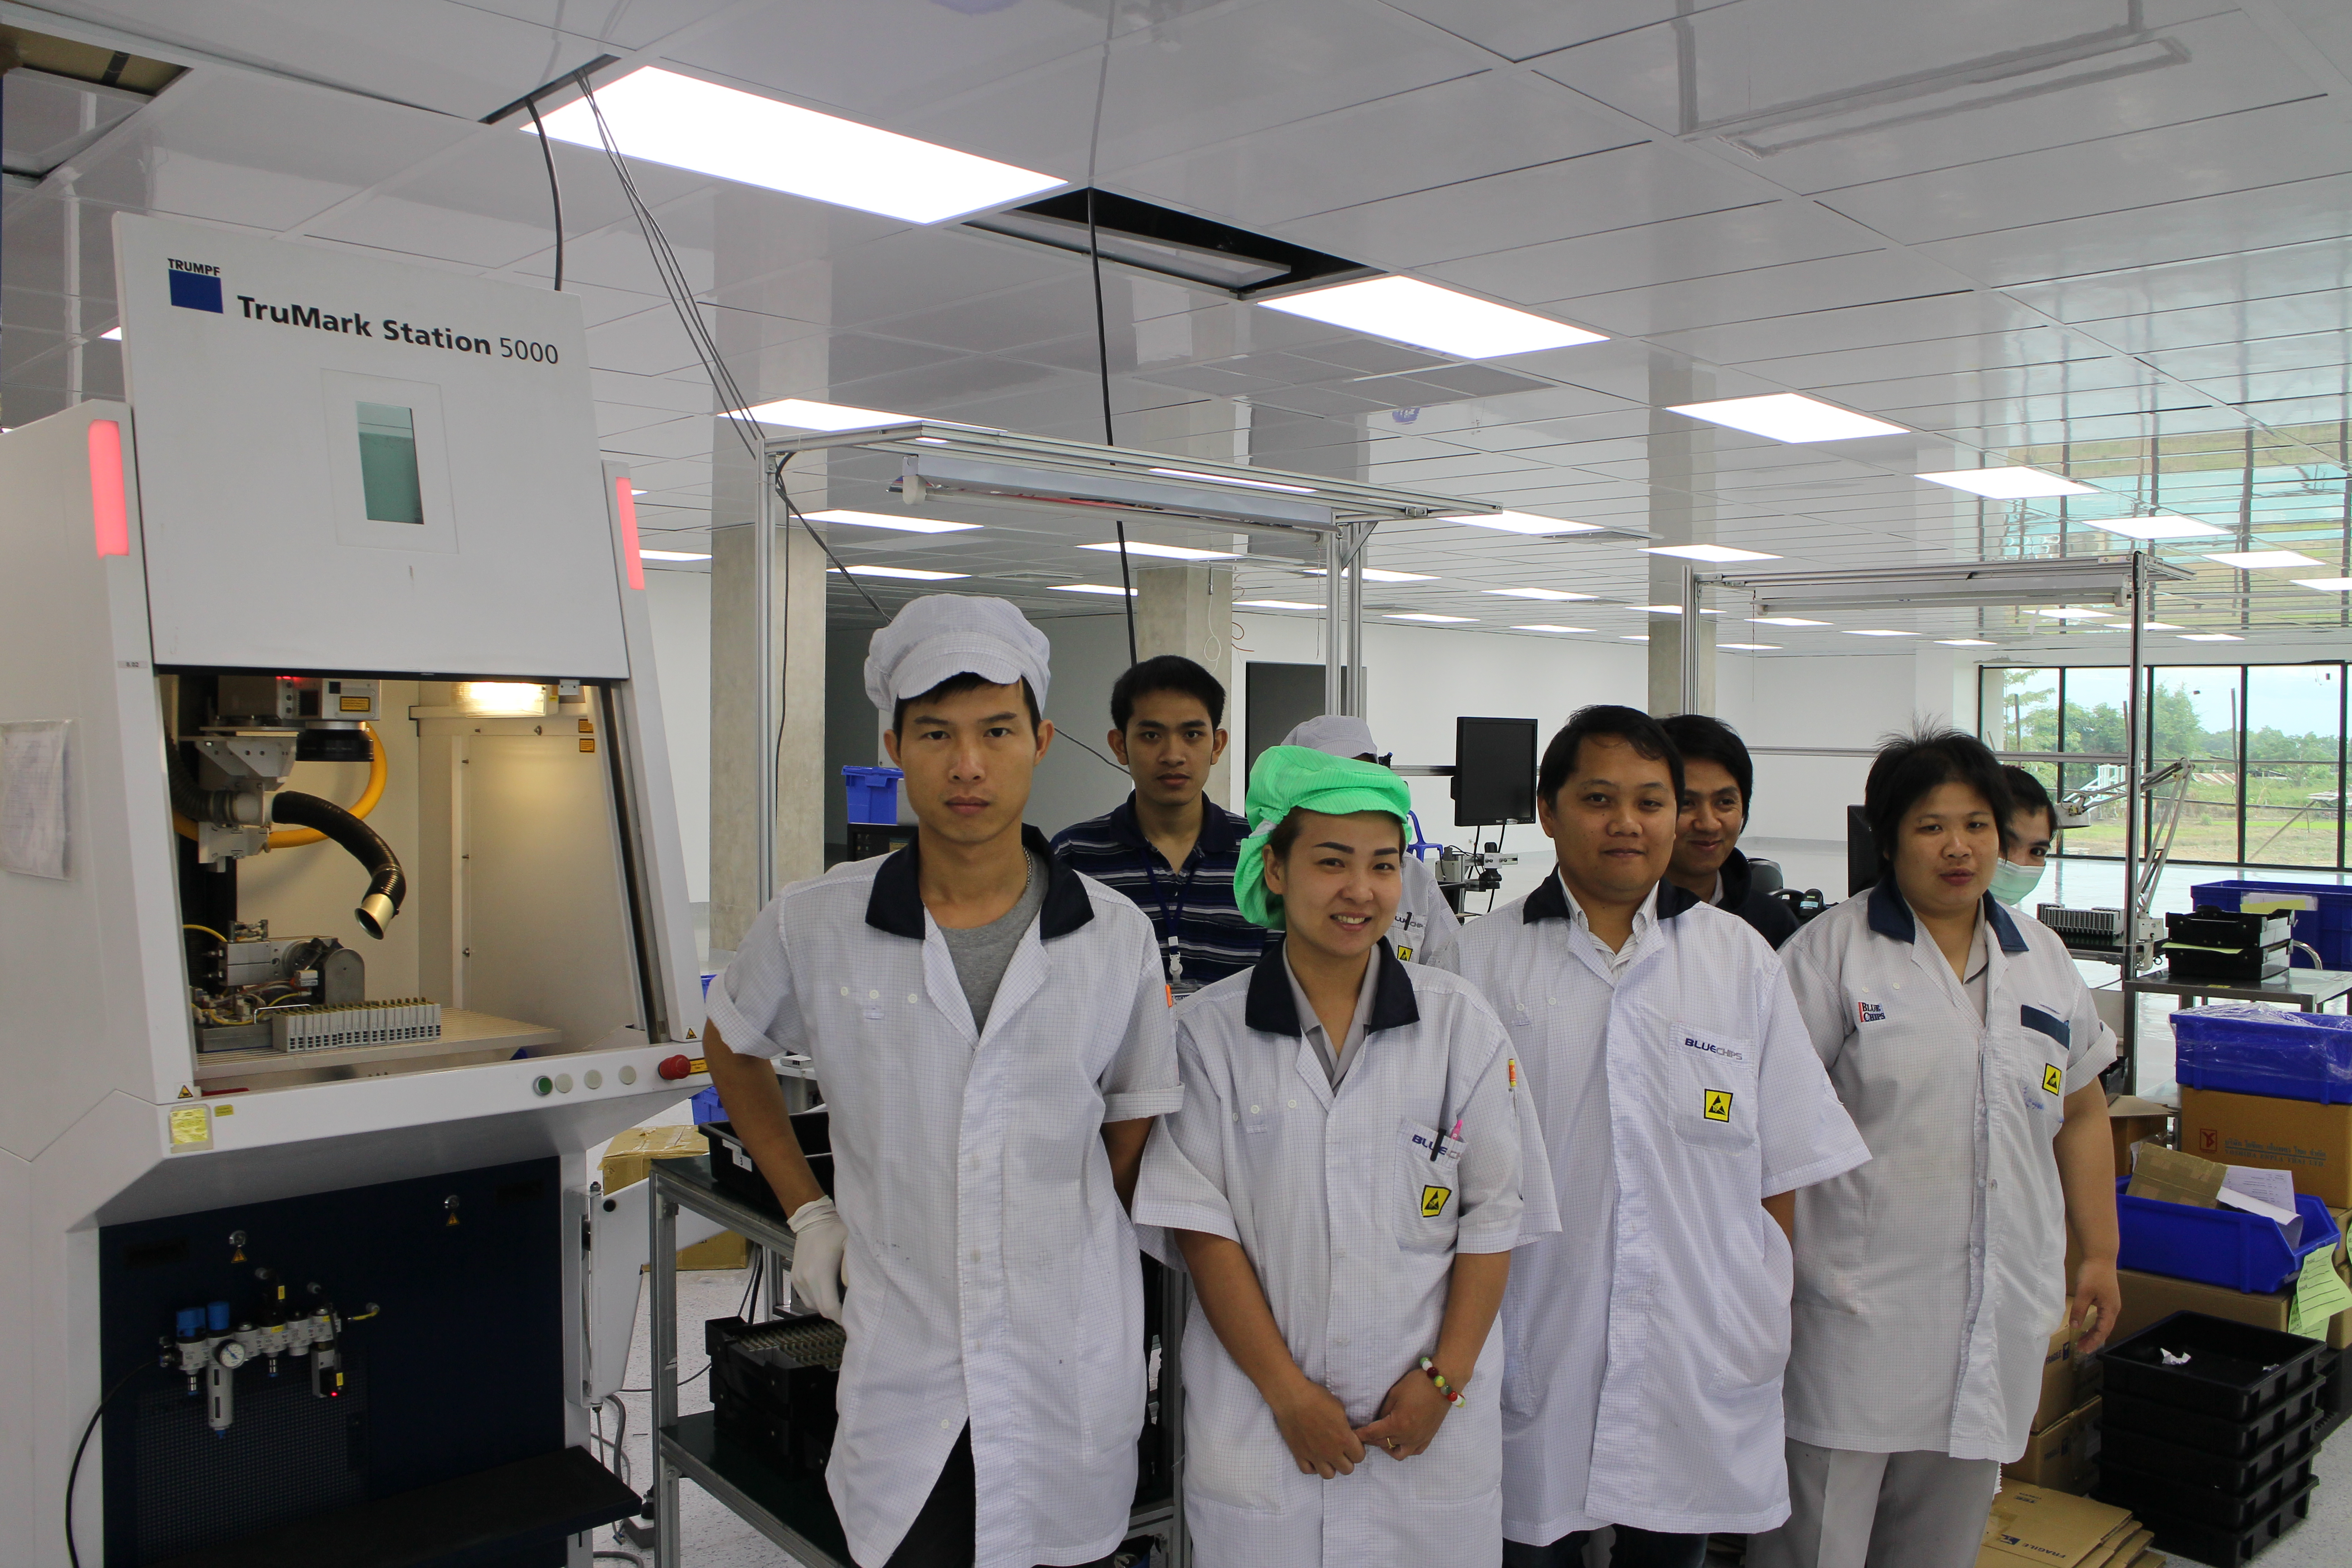 PCB production in the new factory can start